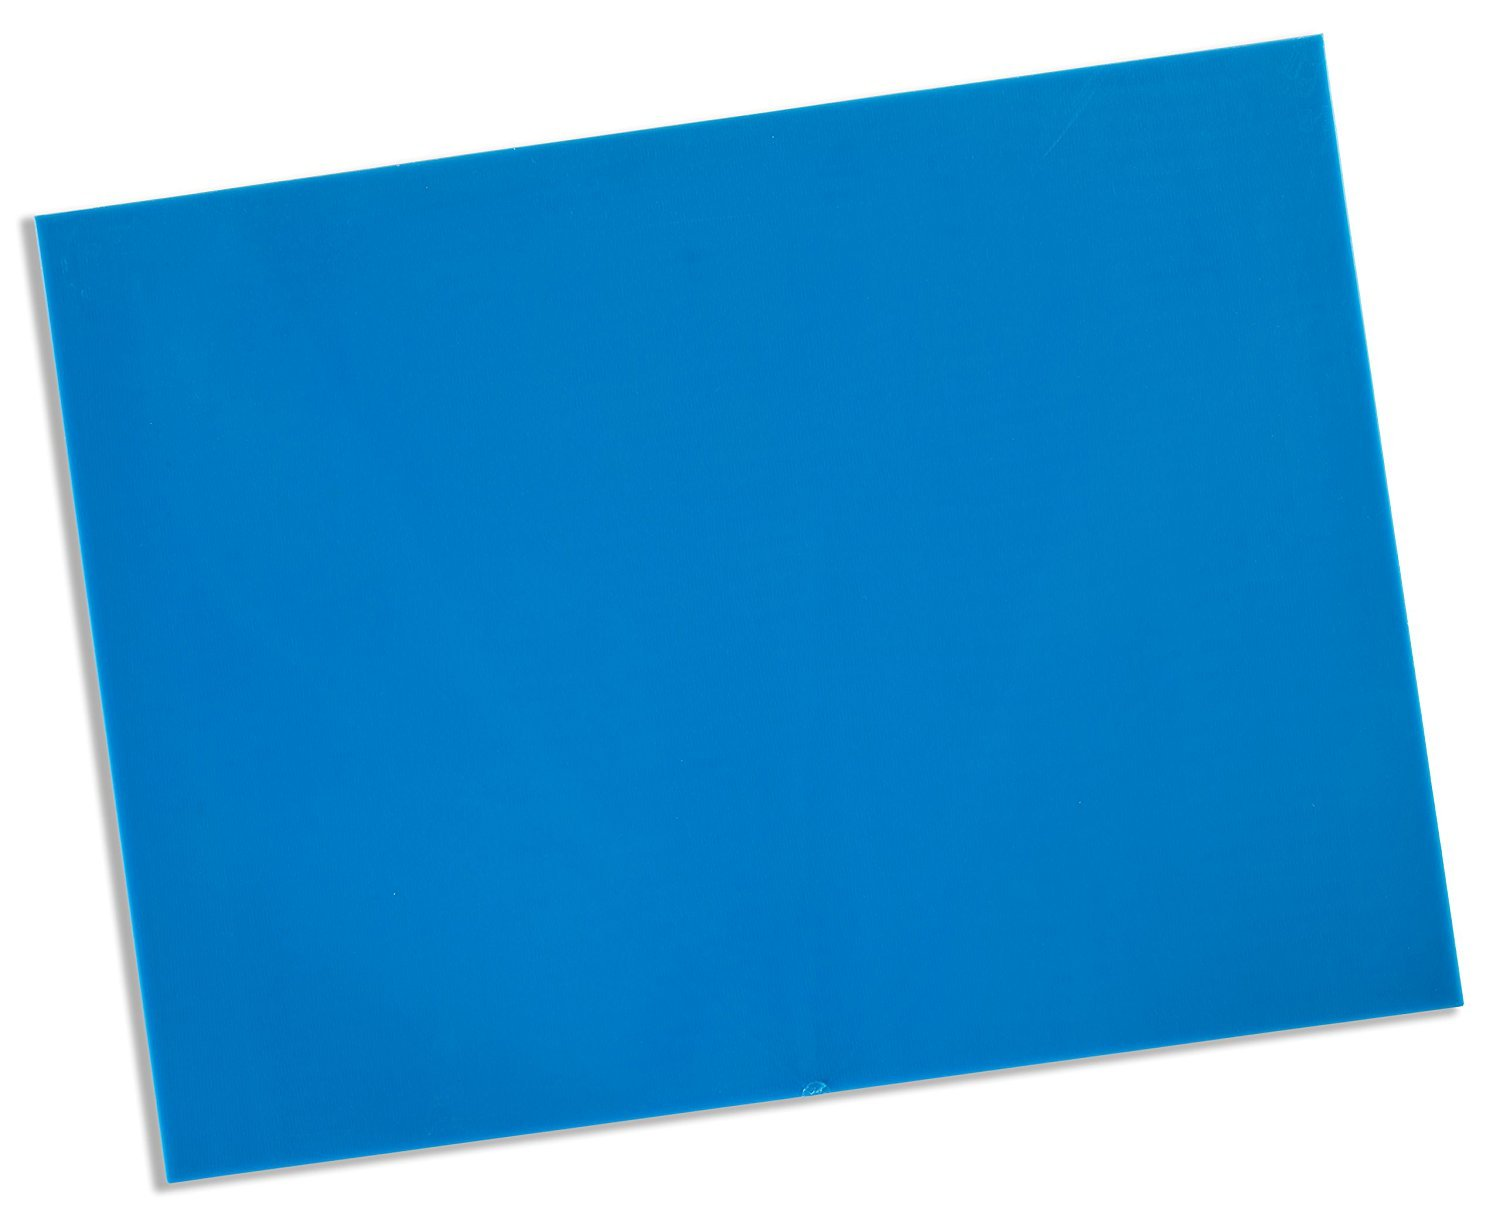 Rolyan Splinting Material Sheet, Aquaplast-T Watercolors, Electric Blue, 1/8'' x 18'' x 24'', Solid, Single Sheet by Cedarburg